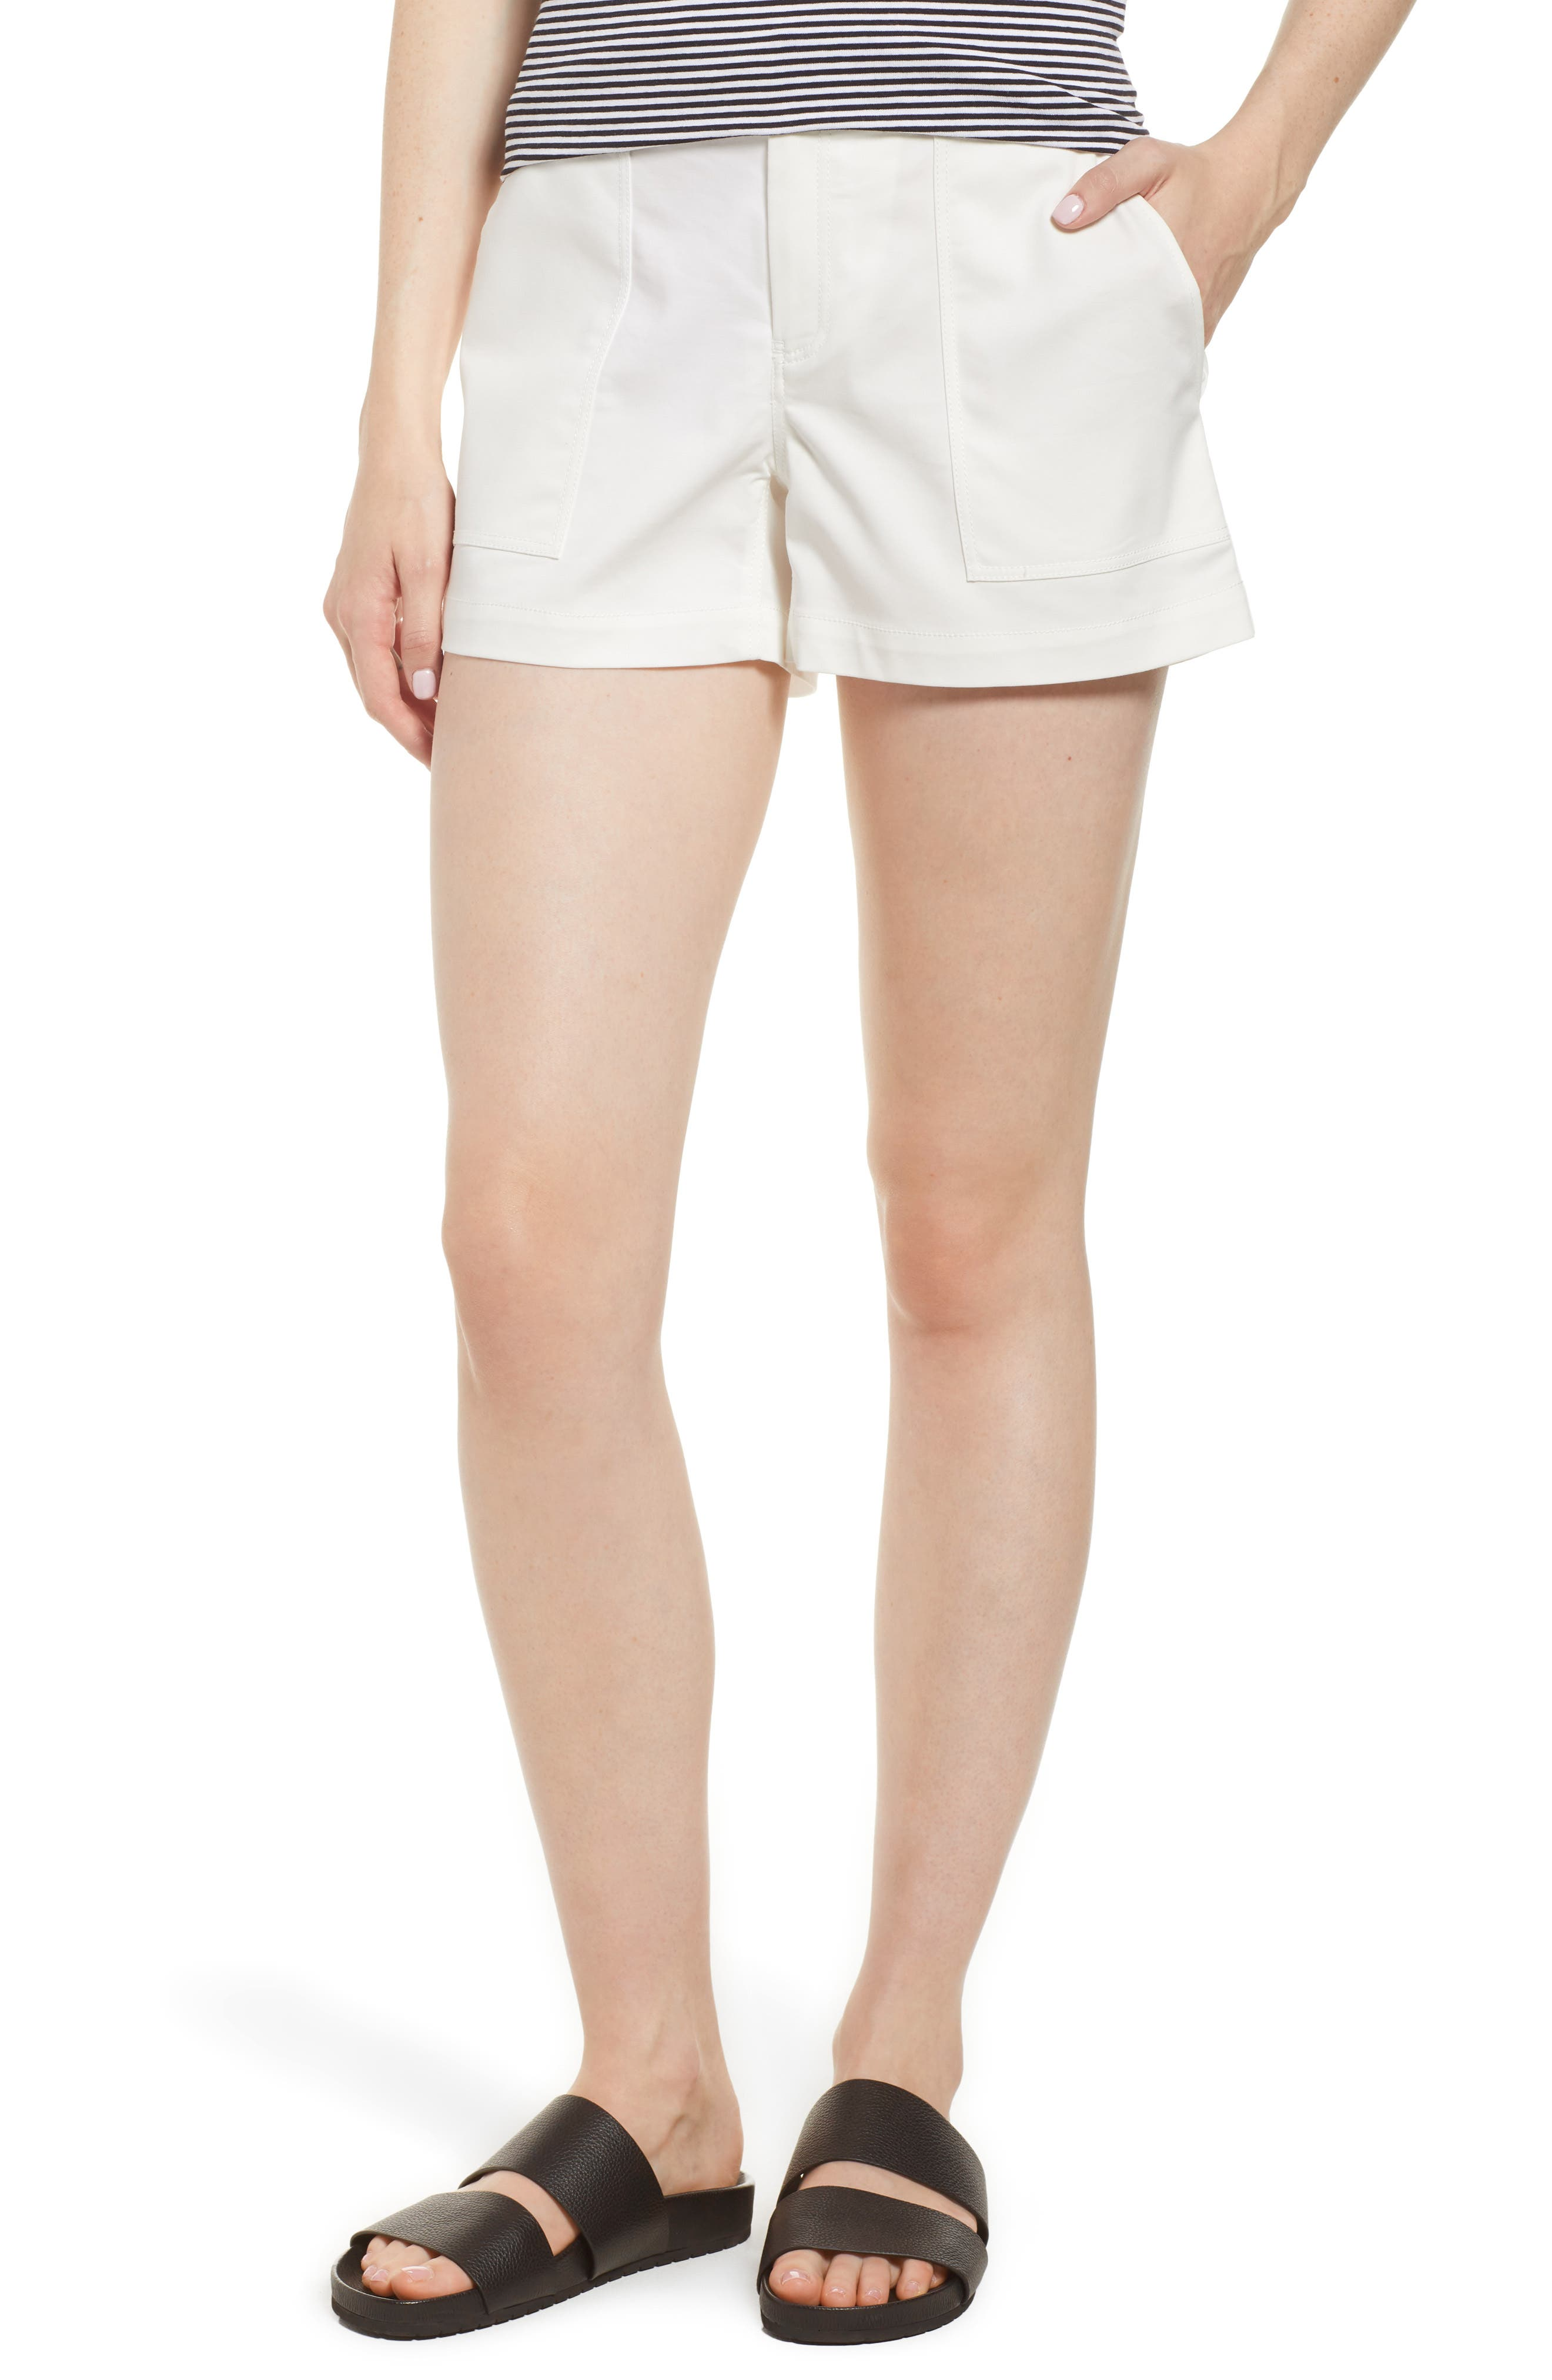 Patch Pocket Shorts,                         Main,                         color, White